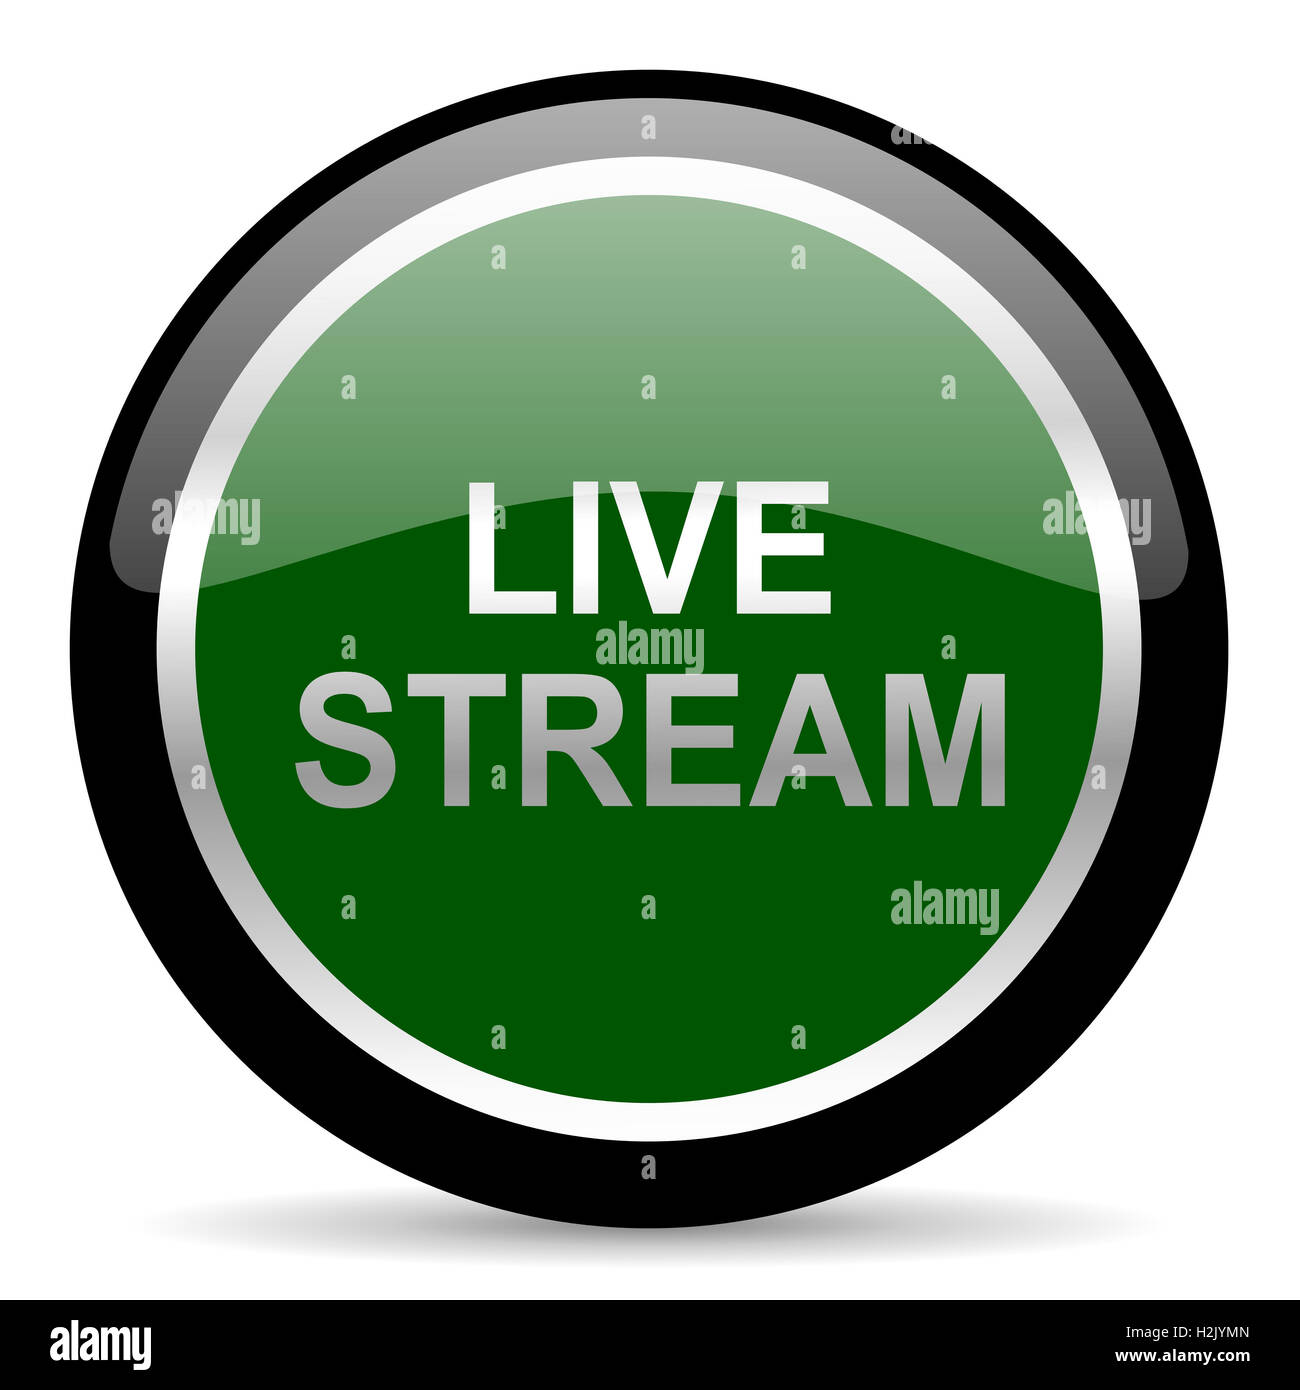 live stream icon - Stock Image